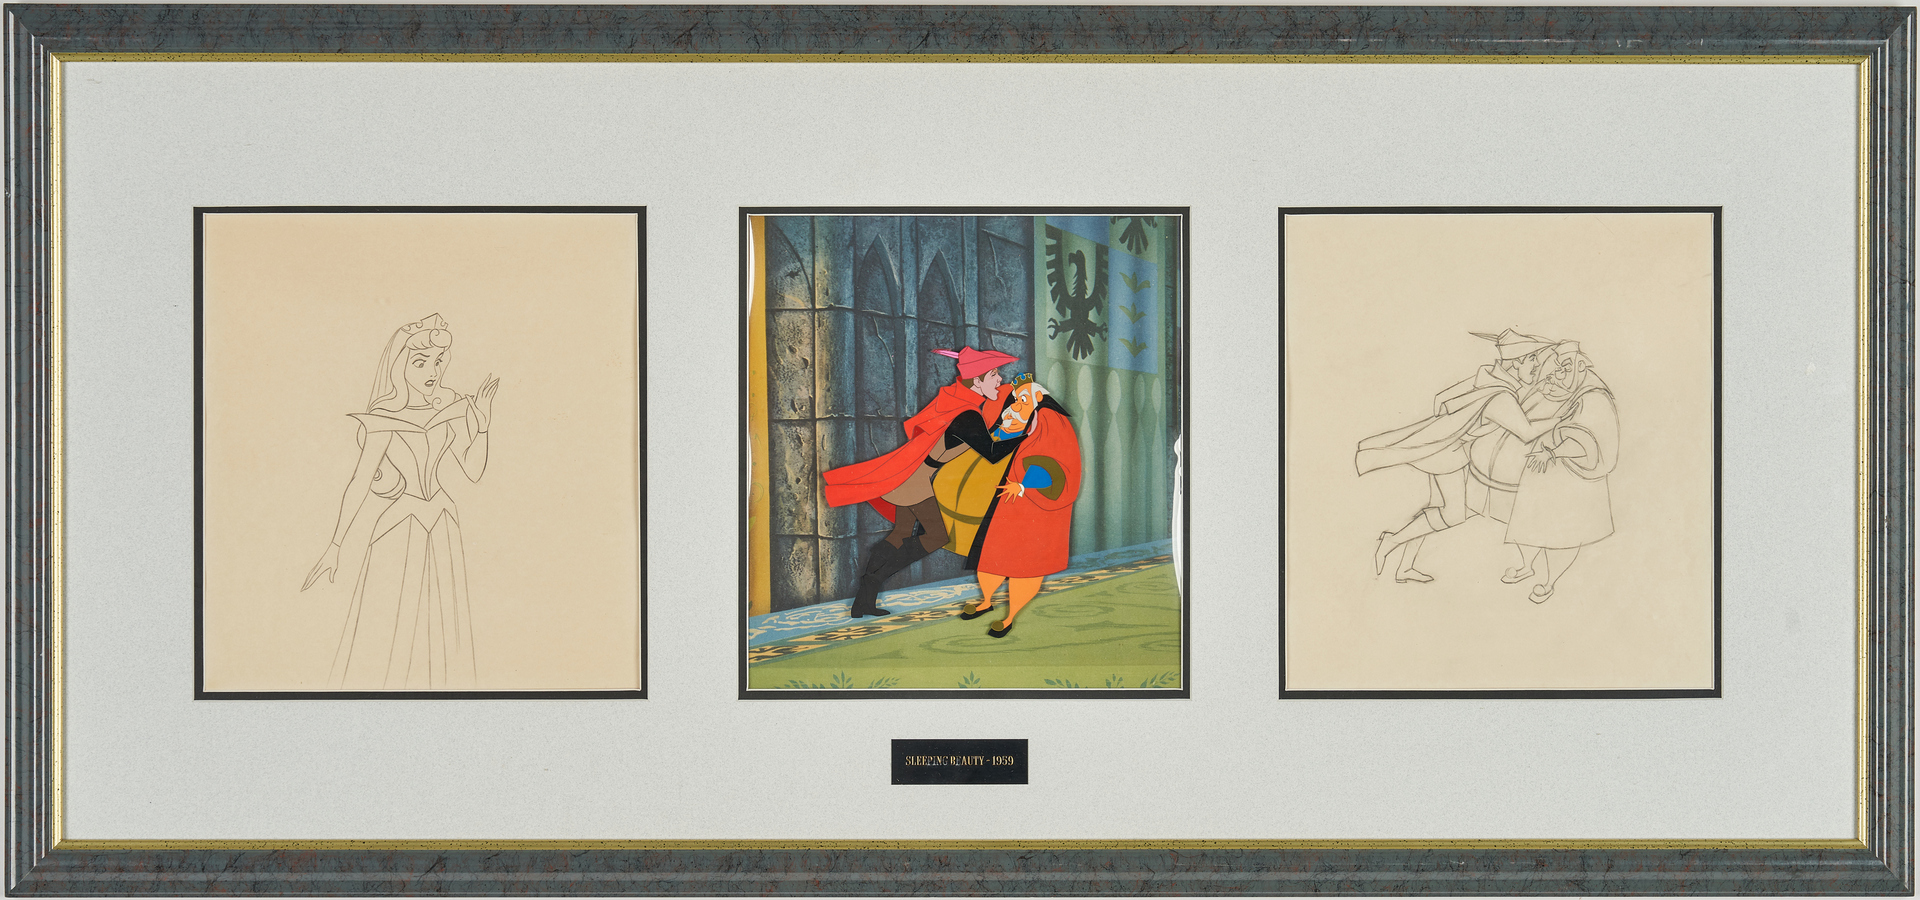 Lot 558: Sleeping Beauty Cel and 2 Drawings, Framed Together